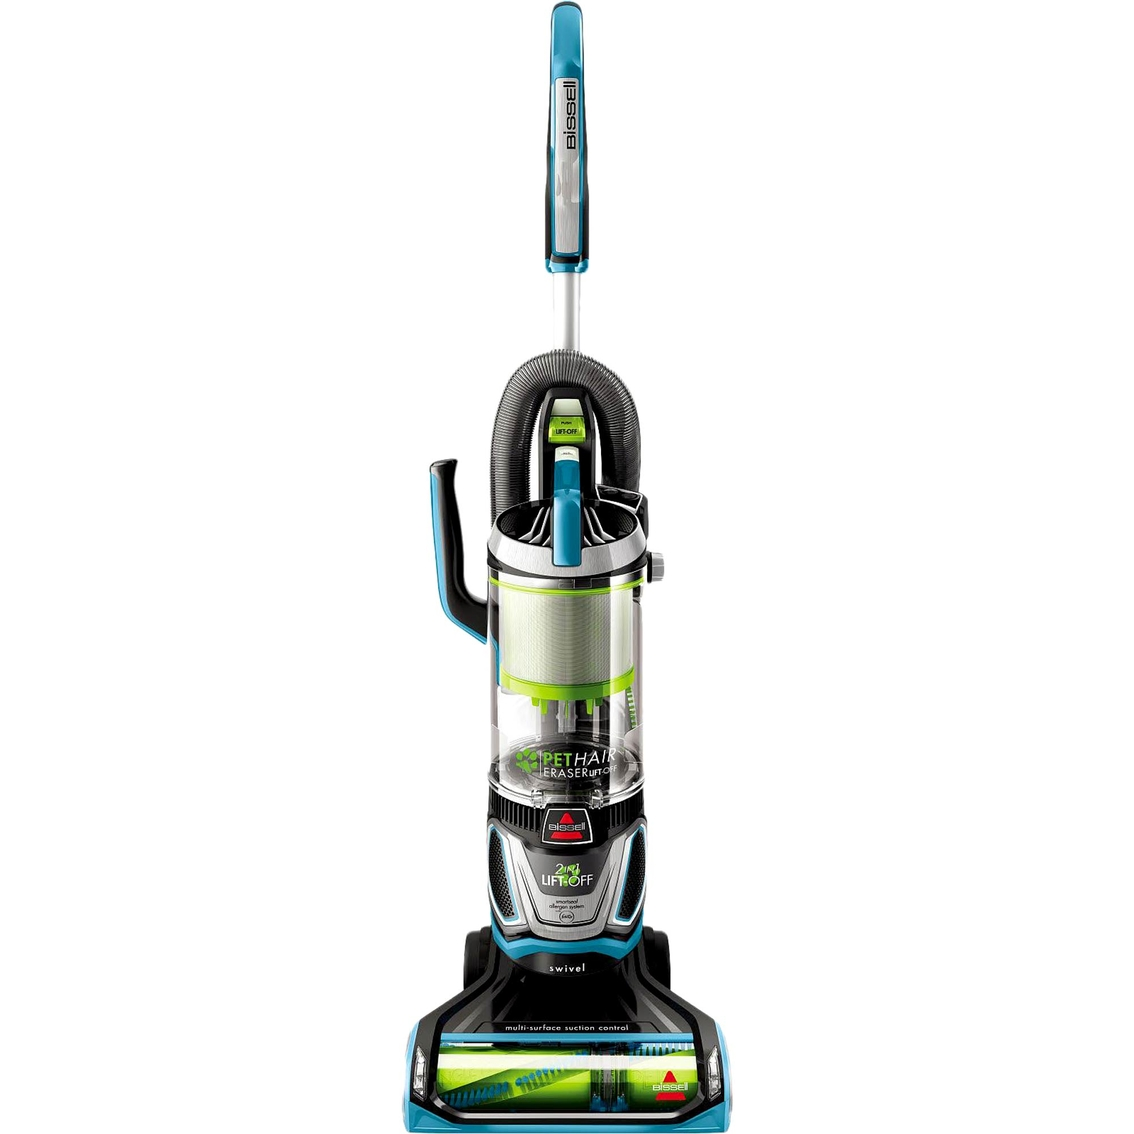 Bissell Pet Hair Eraser Lift Off Upright Vacuum